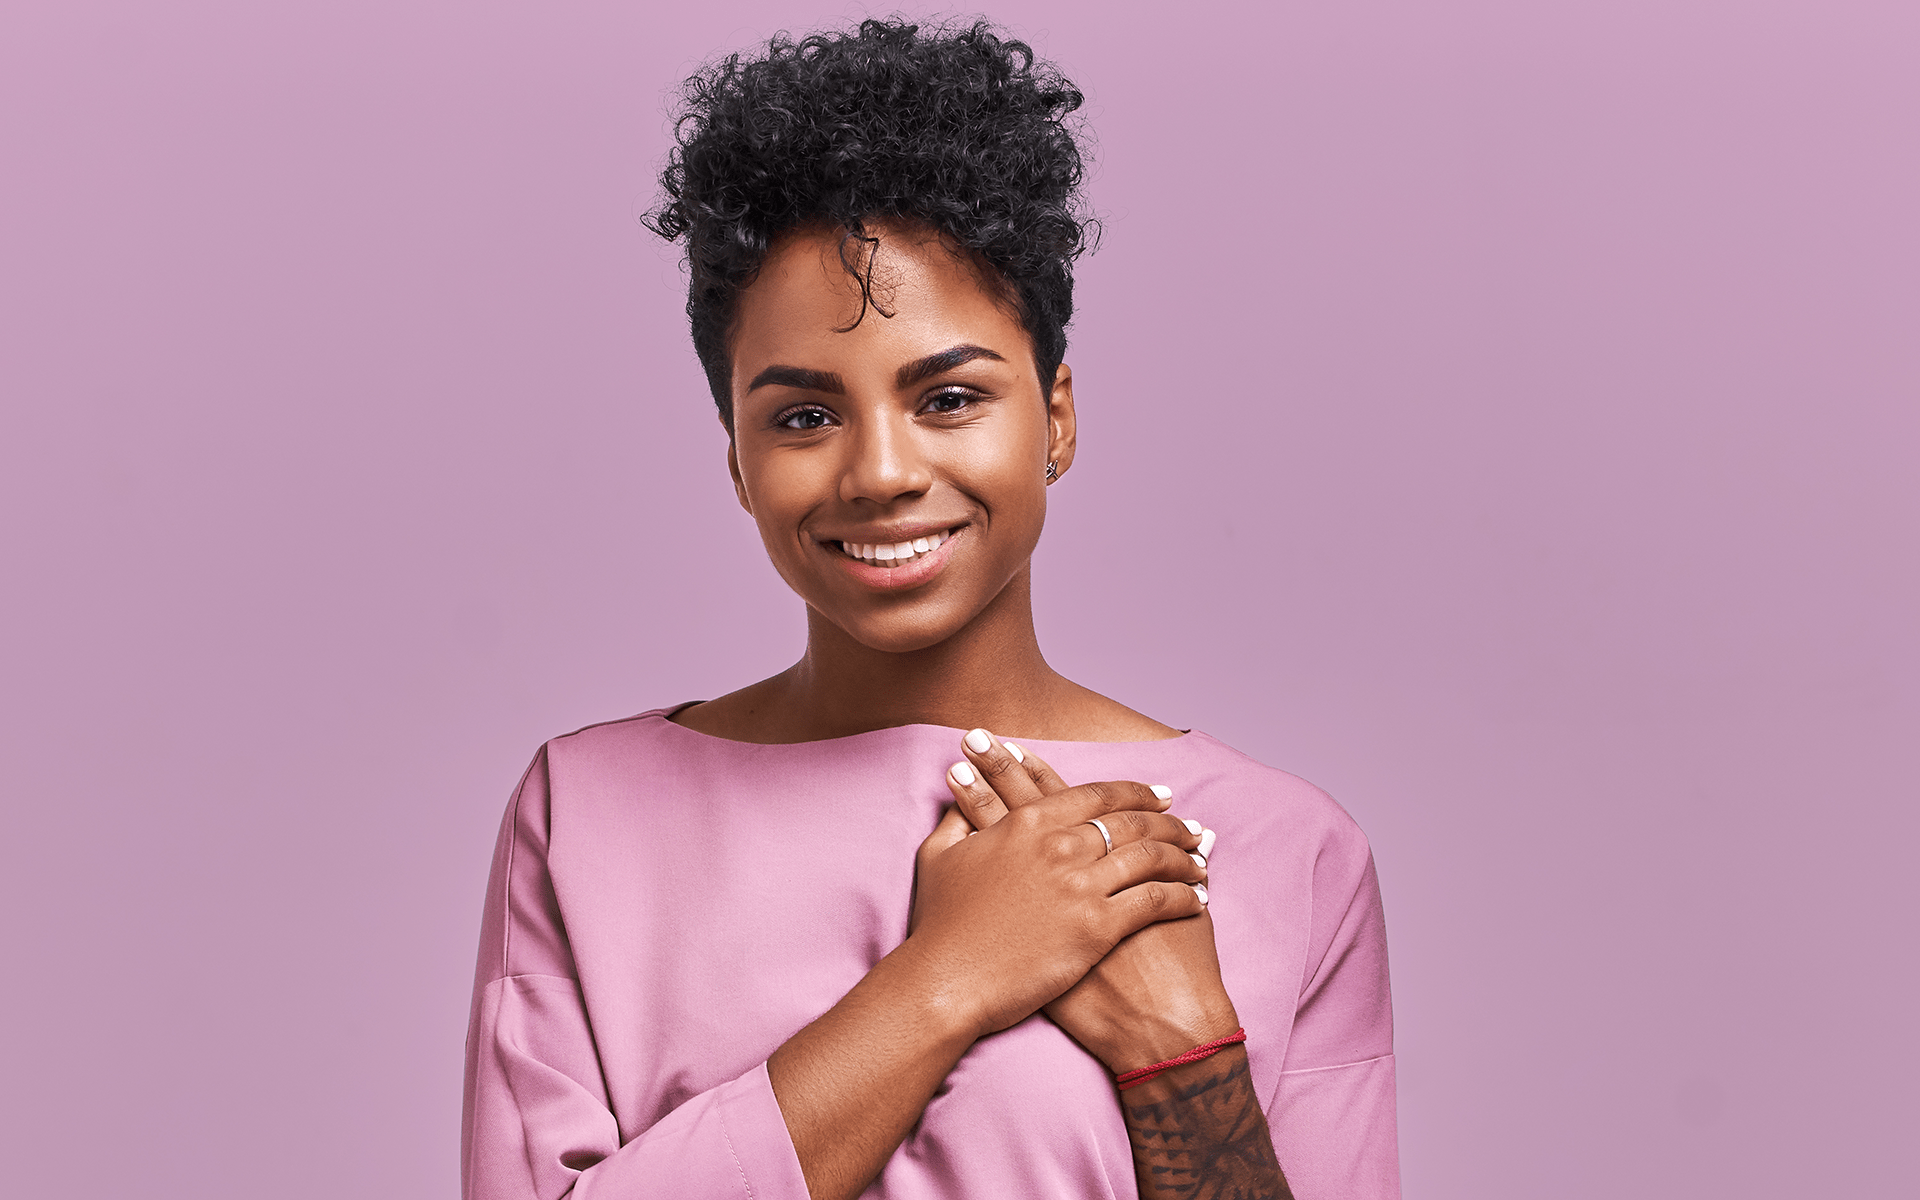 Studio image of a Black women smiling at the camera with her hands on her chest. She's wearing a back shoot with a lavender background behind her.